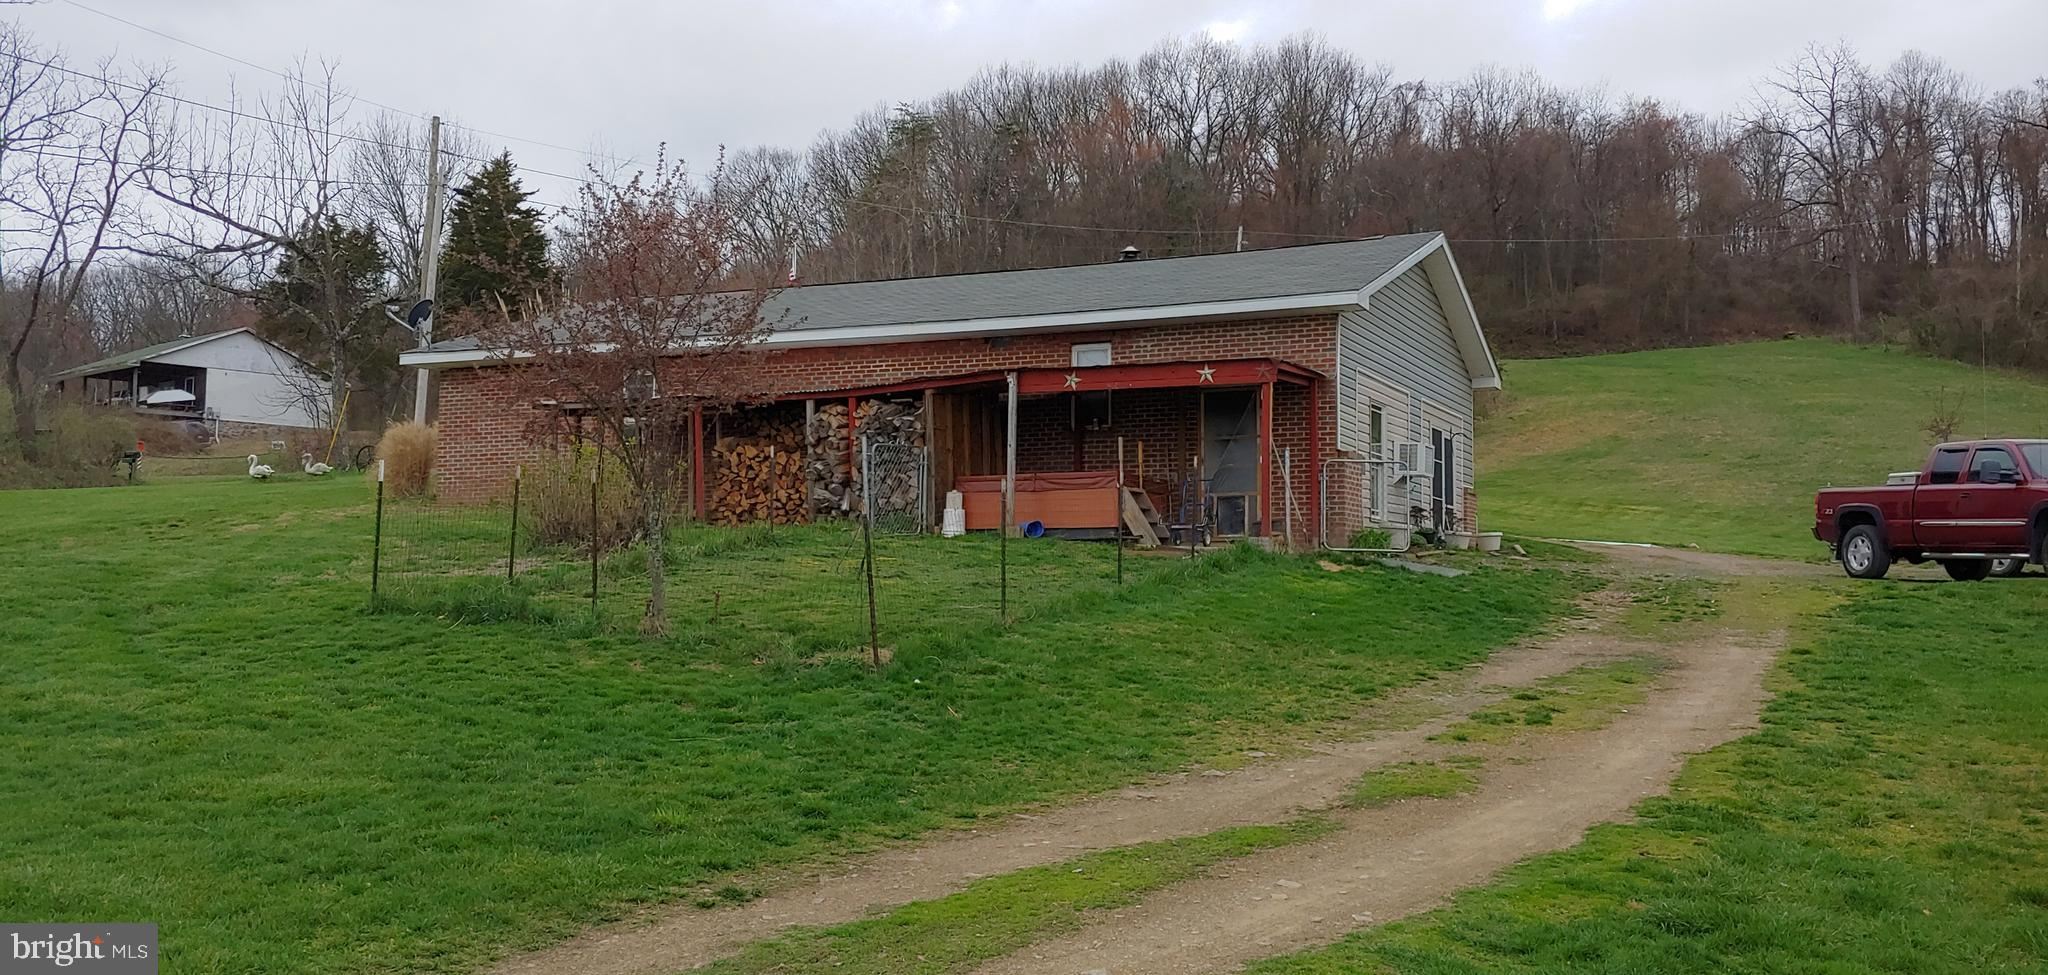 2423 LITTLE CACAPON MOUNTAIN ROAD, AUGUSTA, WV 26704